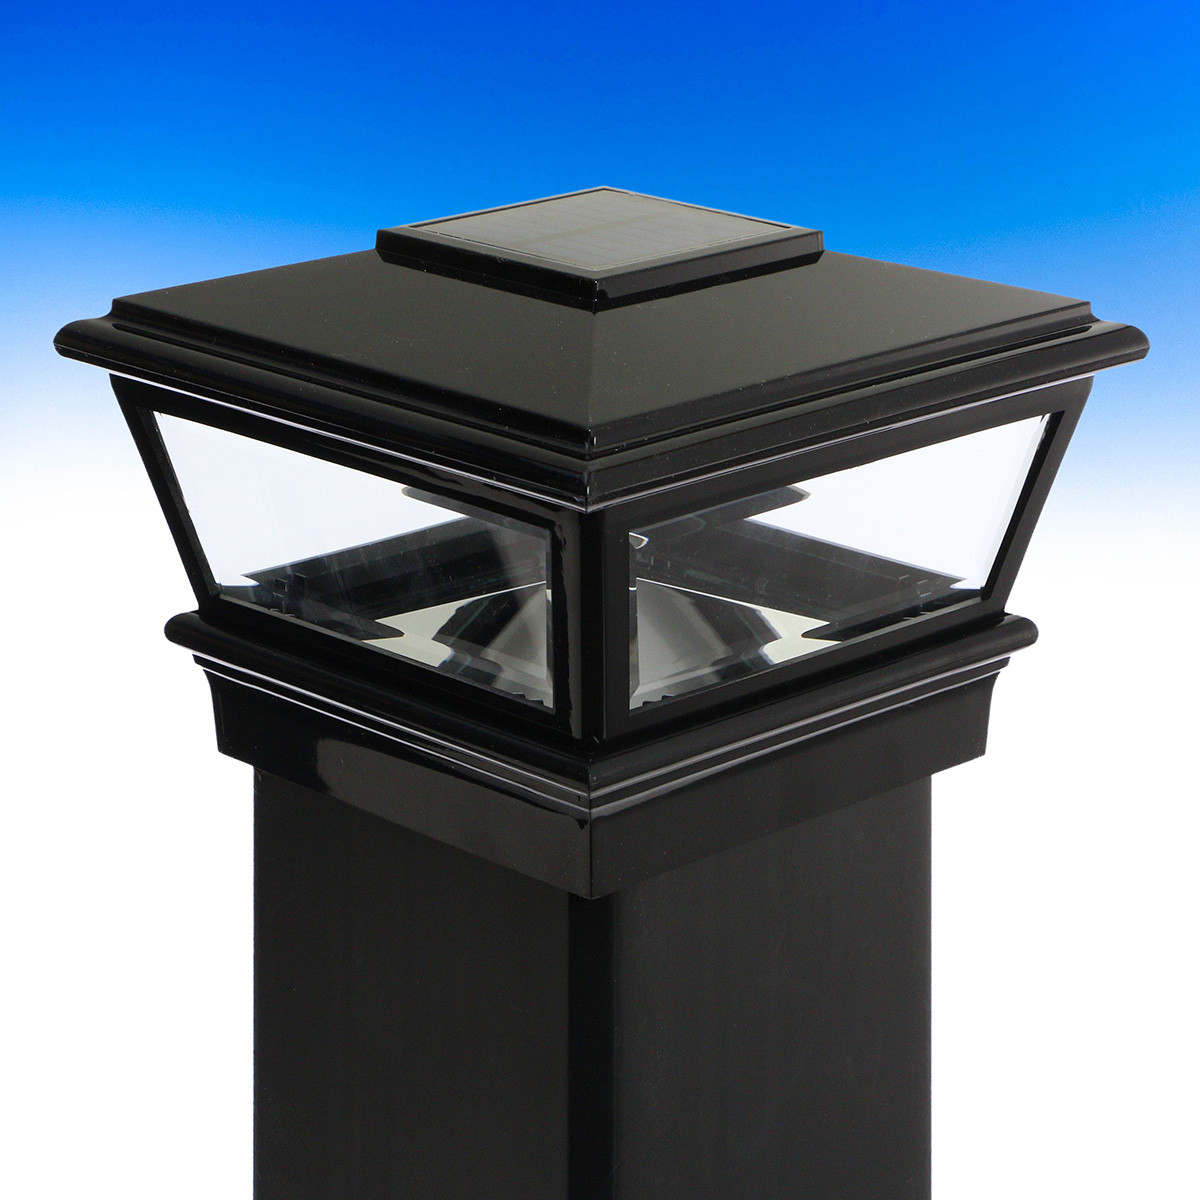 Solar VersaCap by Deckorators-4-1/16 in-Black - Installed and unlit